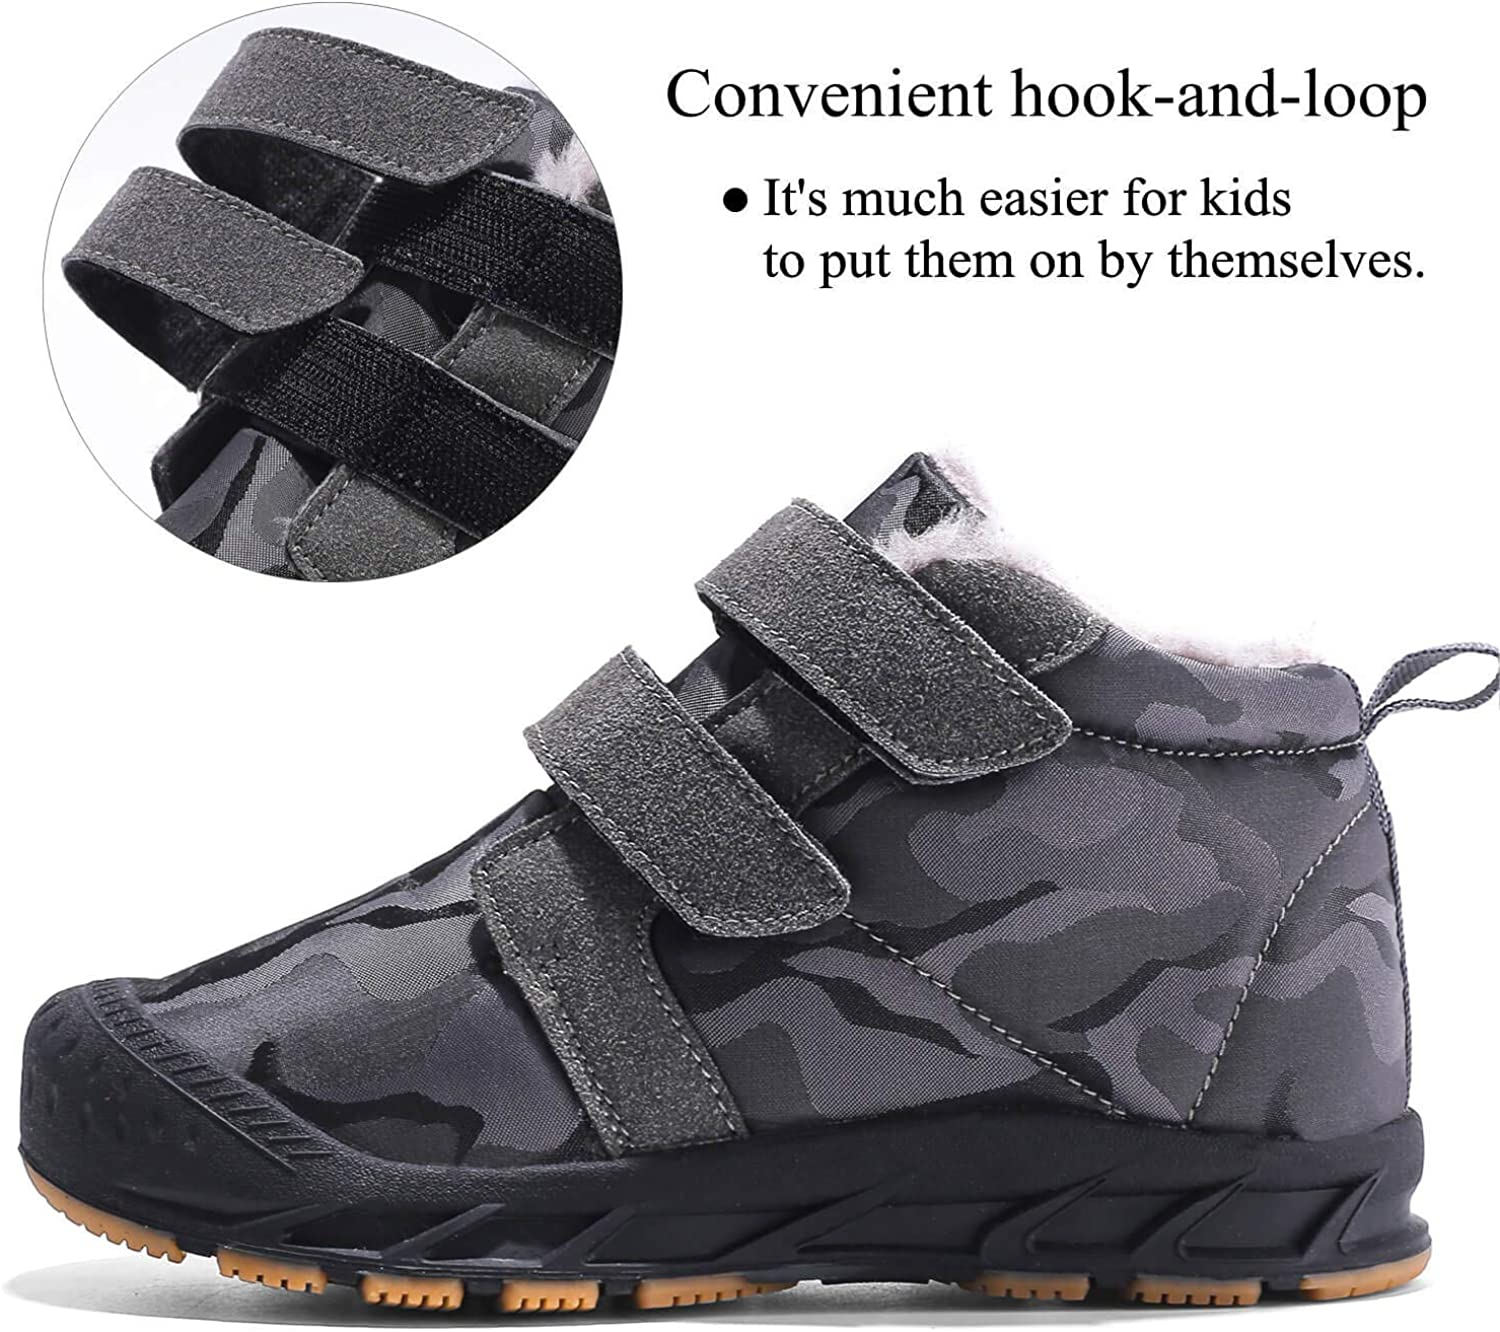 ITAPO Kids Winter Snow Boots Anti-Slip Ankle Boots Shoes with Fur Lining